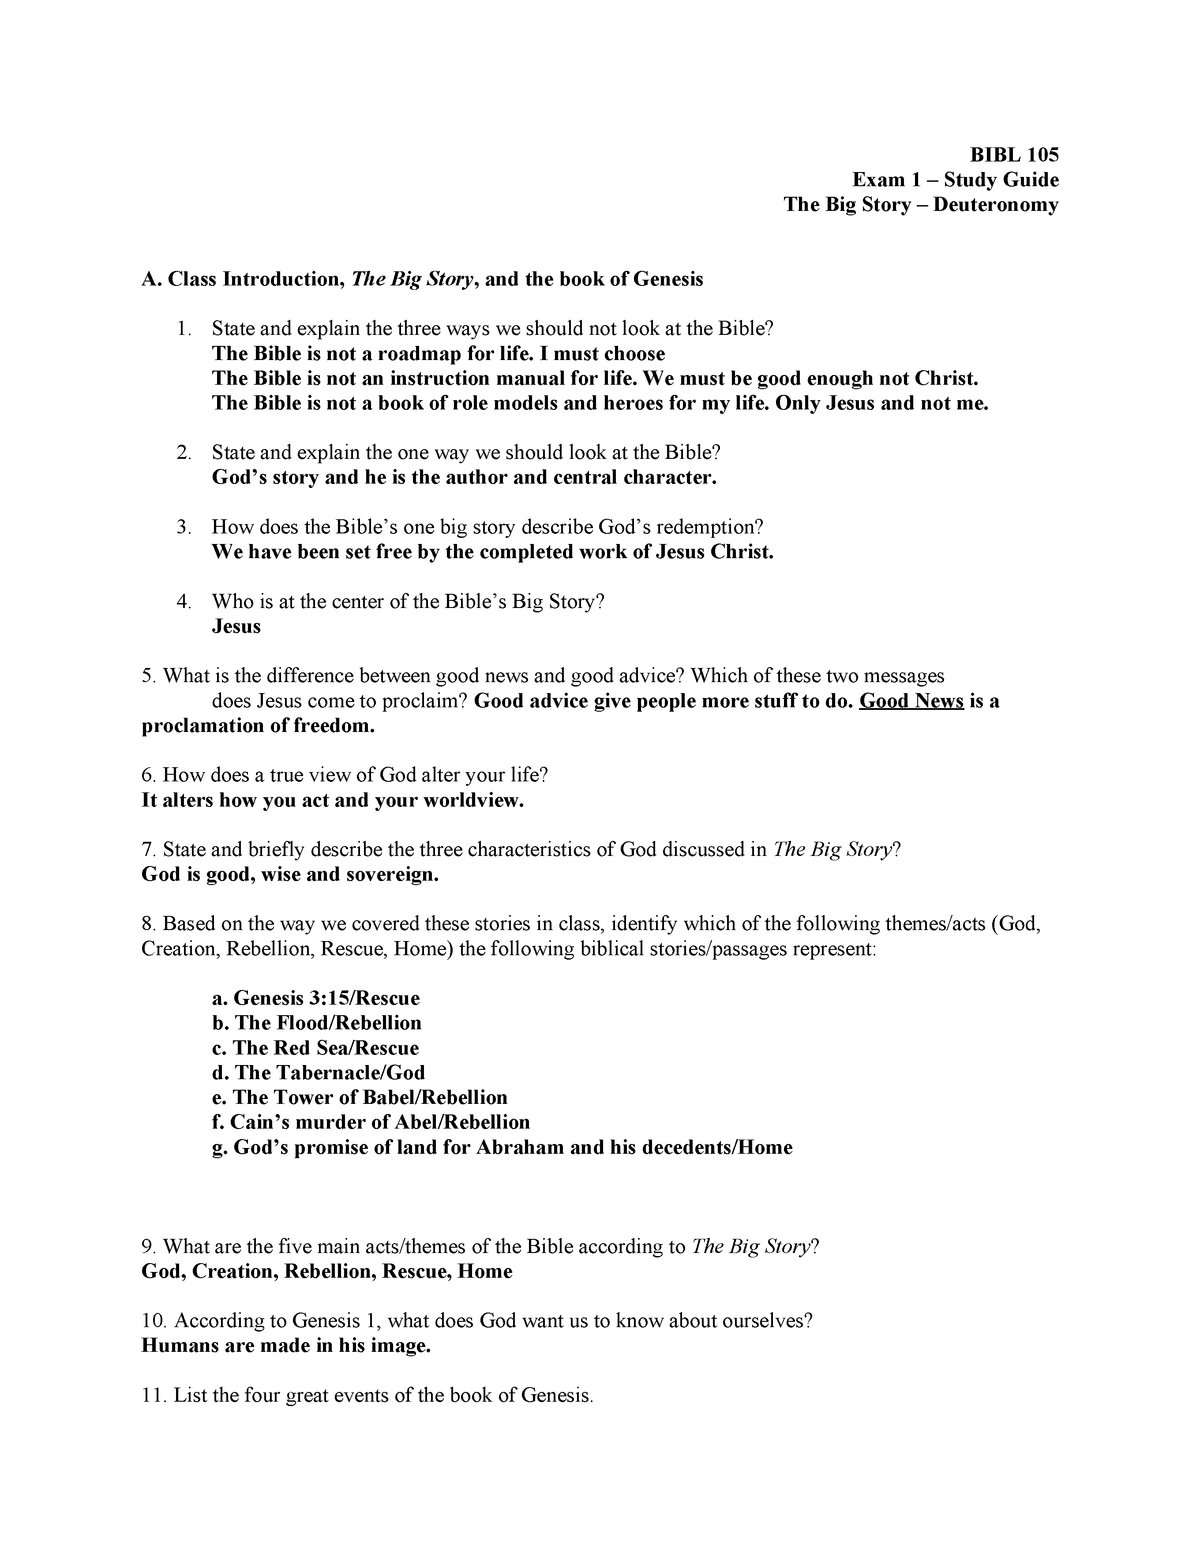 EXAM REVIEW 1 September Autumn 2018, questions and answers